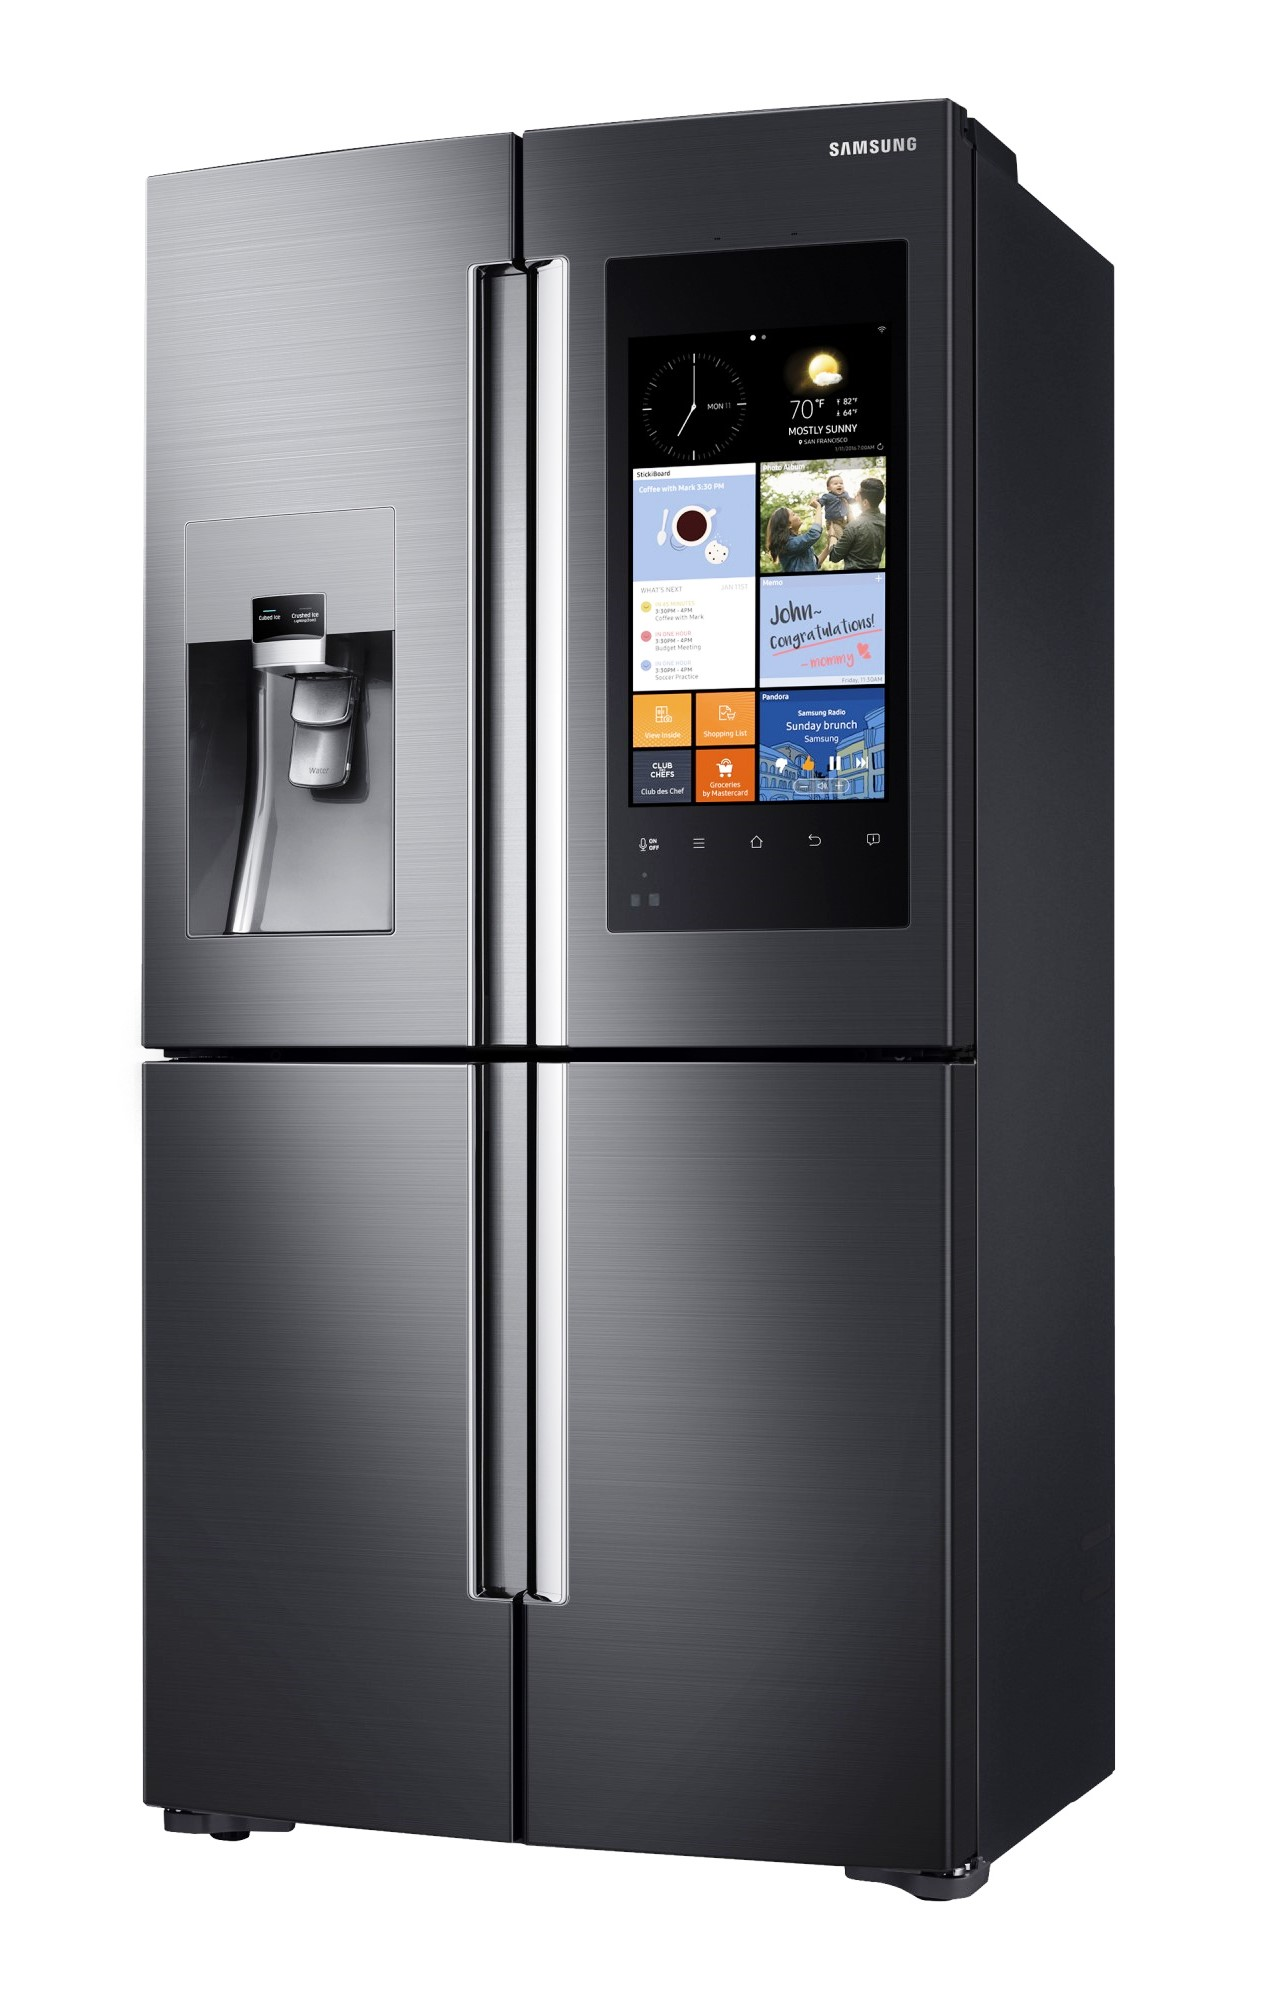 samsung family hub refrigerator kulkas pintar masa kini technobusiness id. Black Bedroom Furniture Sets. Home Design Ideas